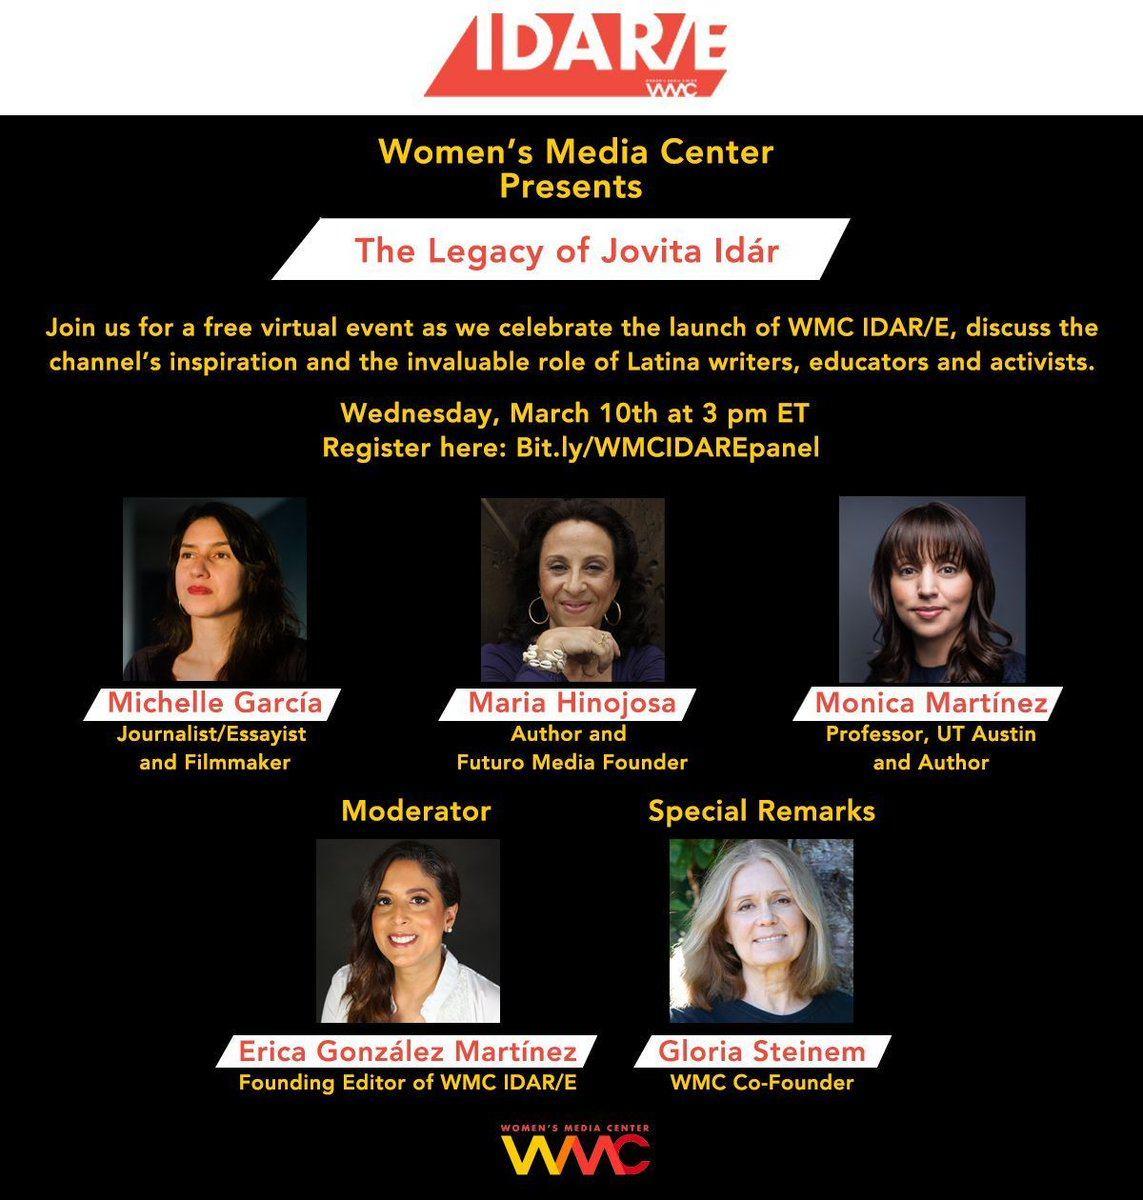 We're celebrating the launch of our new channel, WMC IDAR/E, with an expert panel to talk about the inspiration behind it and the media landscape's dire need for Latina writers, educators and activists. Join us on March 10 at 3pm EST!